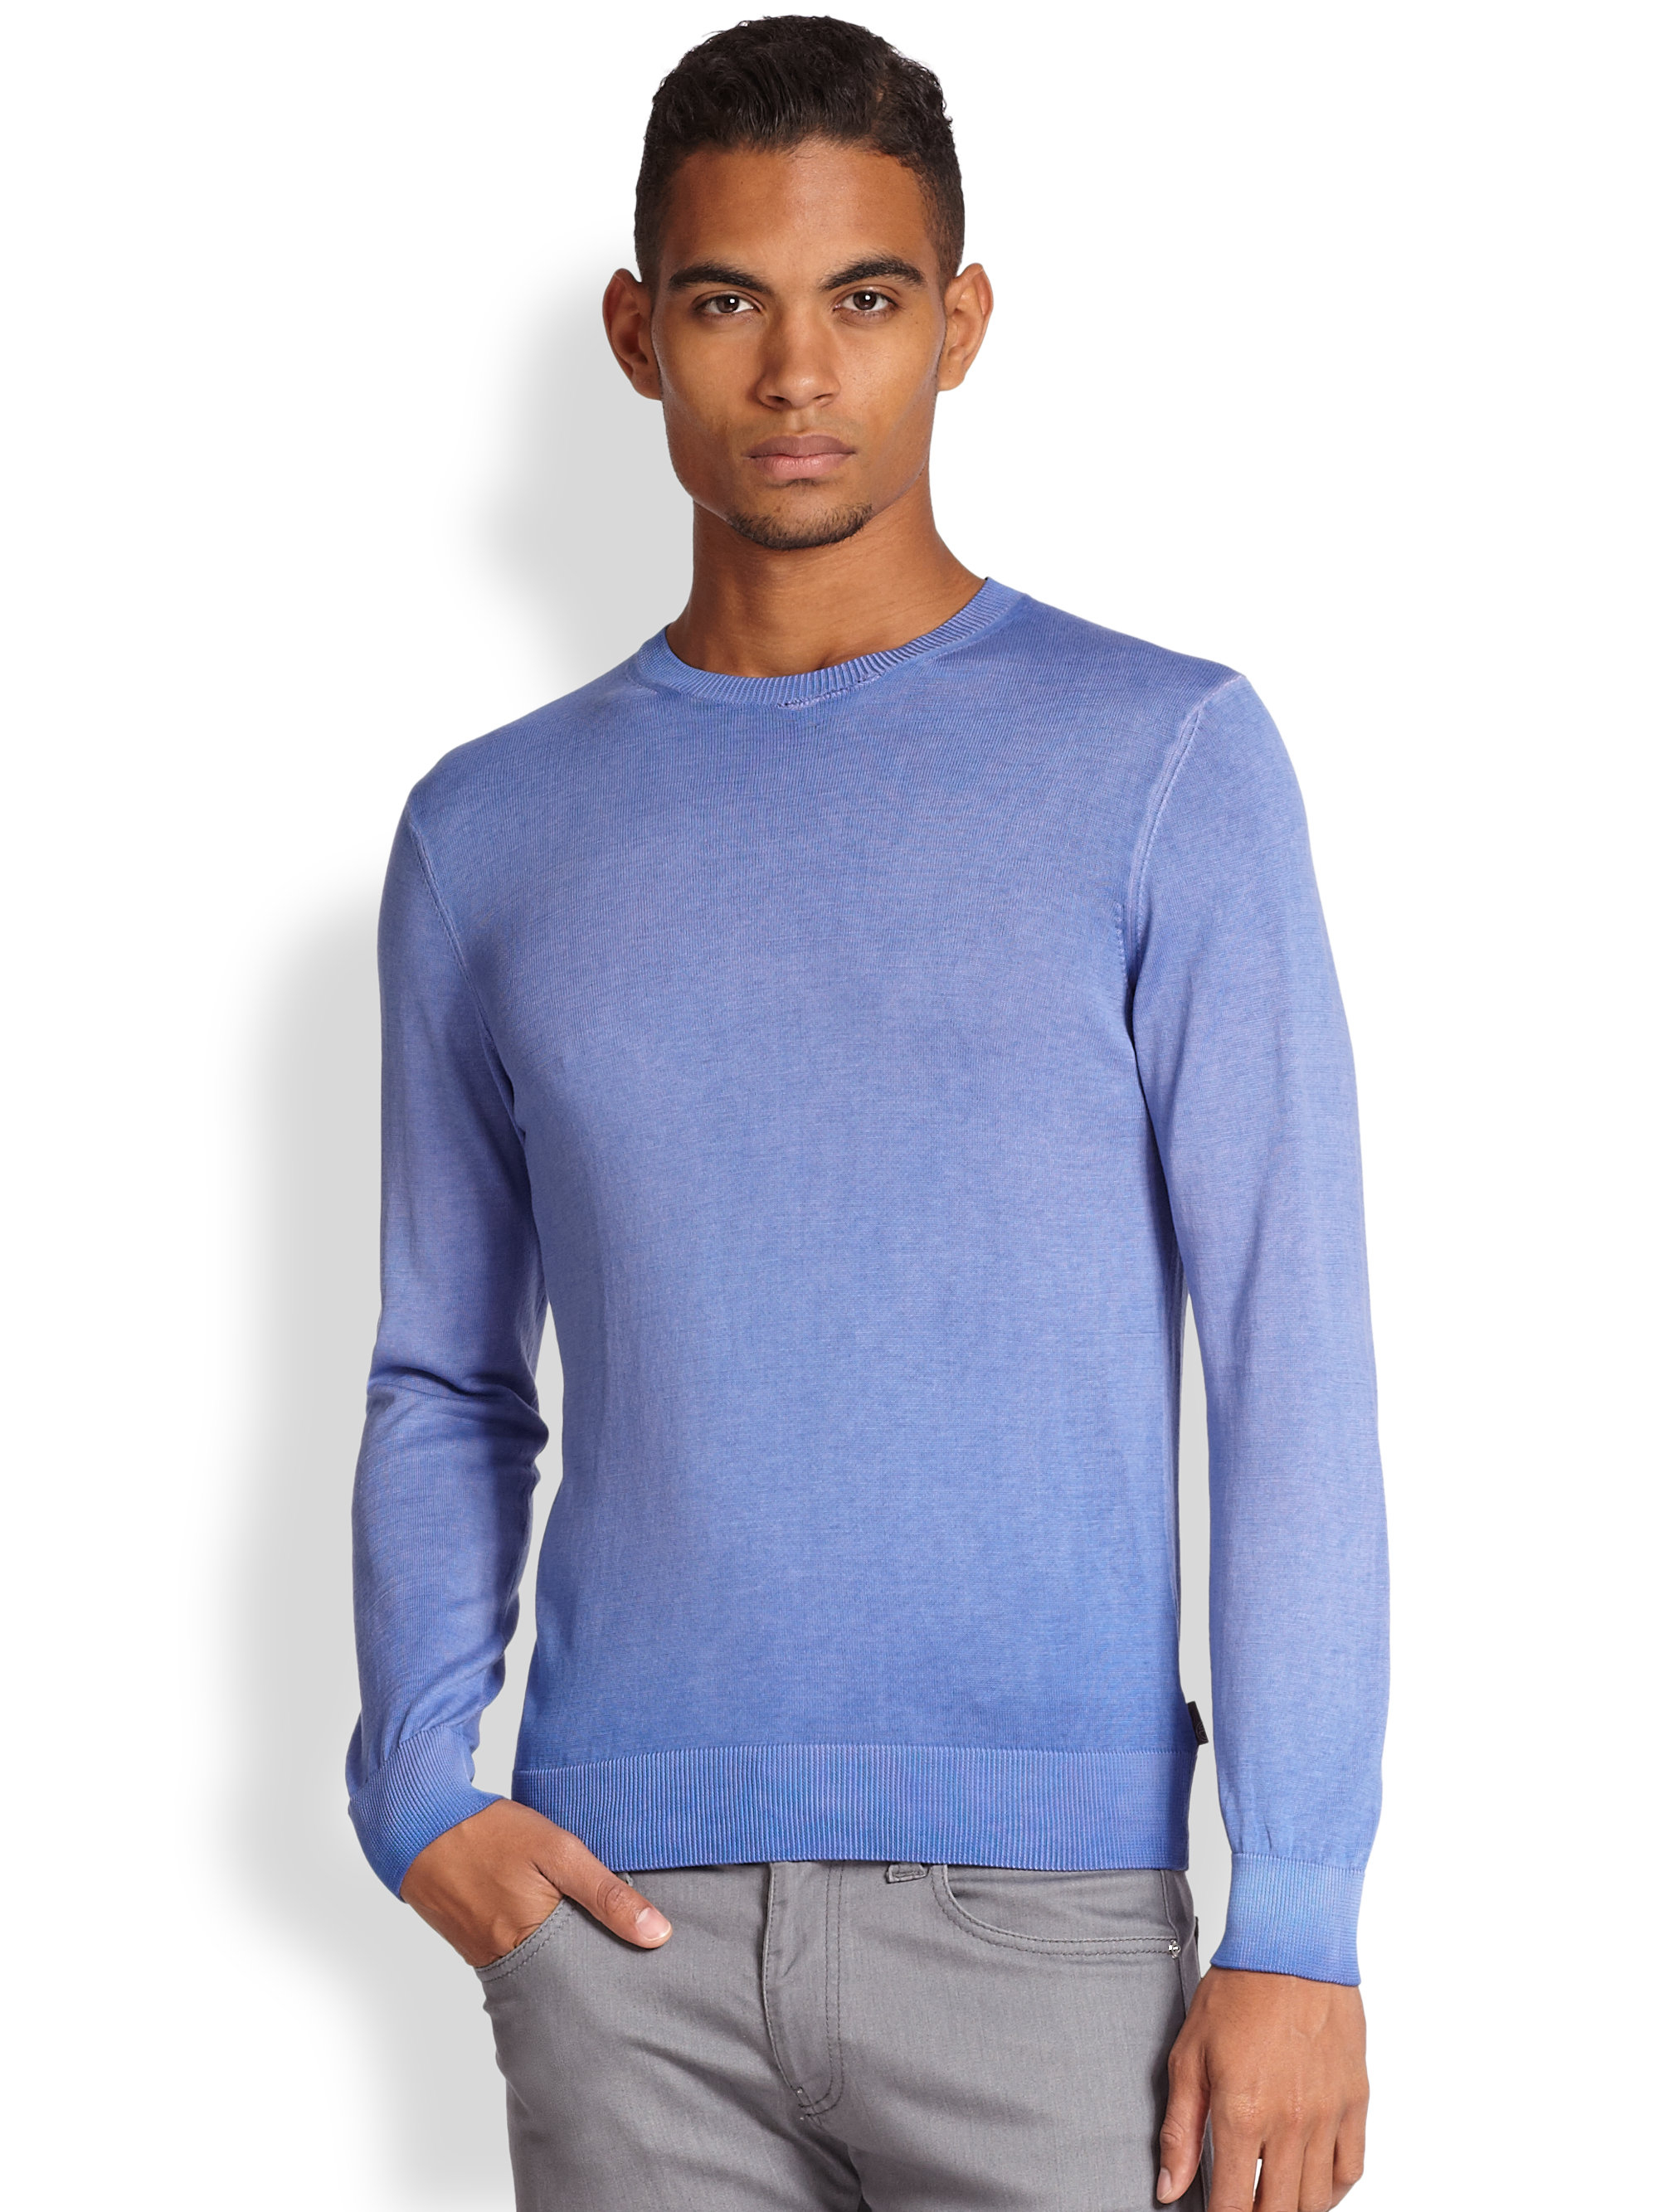 Light Blue Crewneck $79 USD This versatile light blue sweater is tailored to a comfortable slim fit from pure, breathable Merino wool, and features a subtly tapered hem and cuffs, and a crewneck collar.